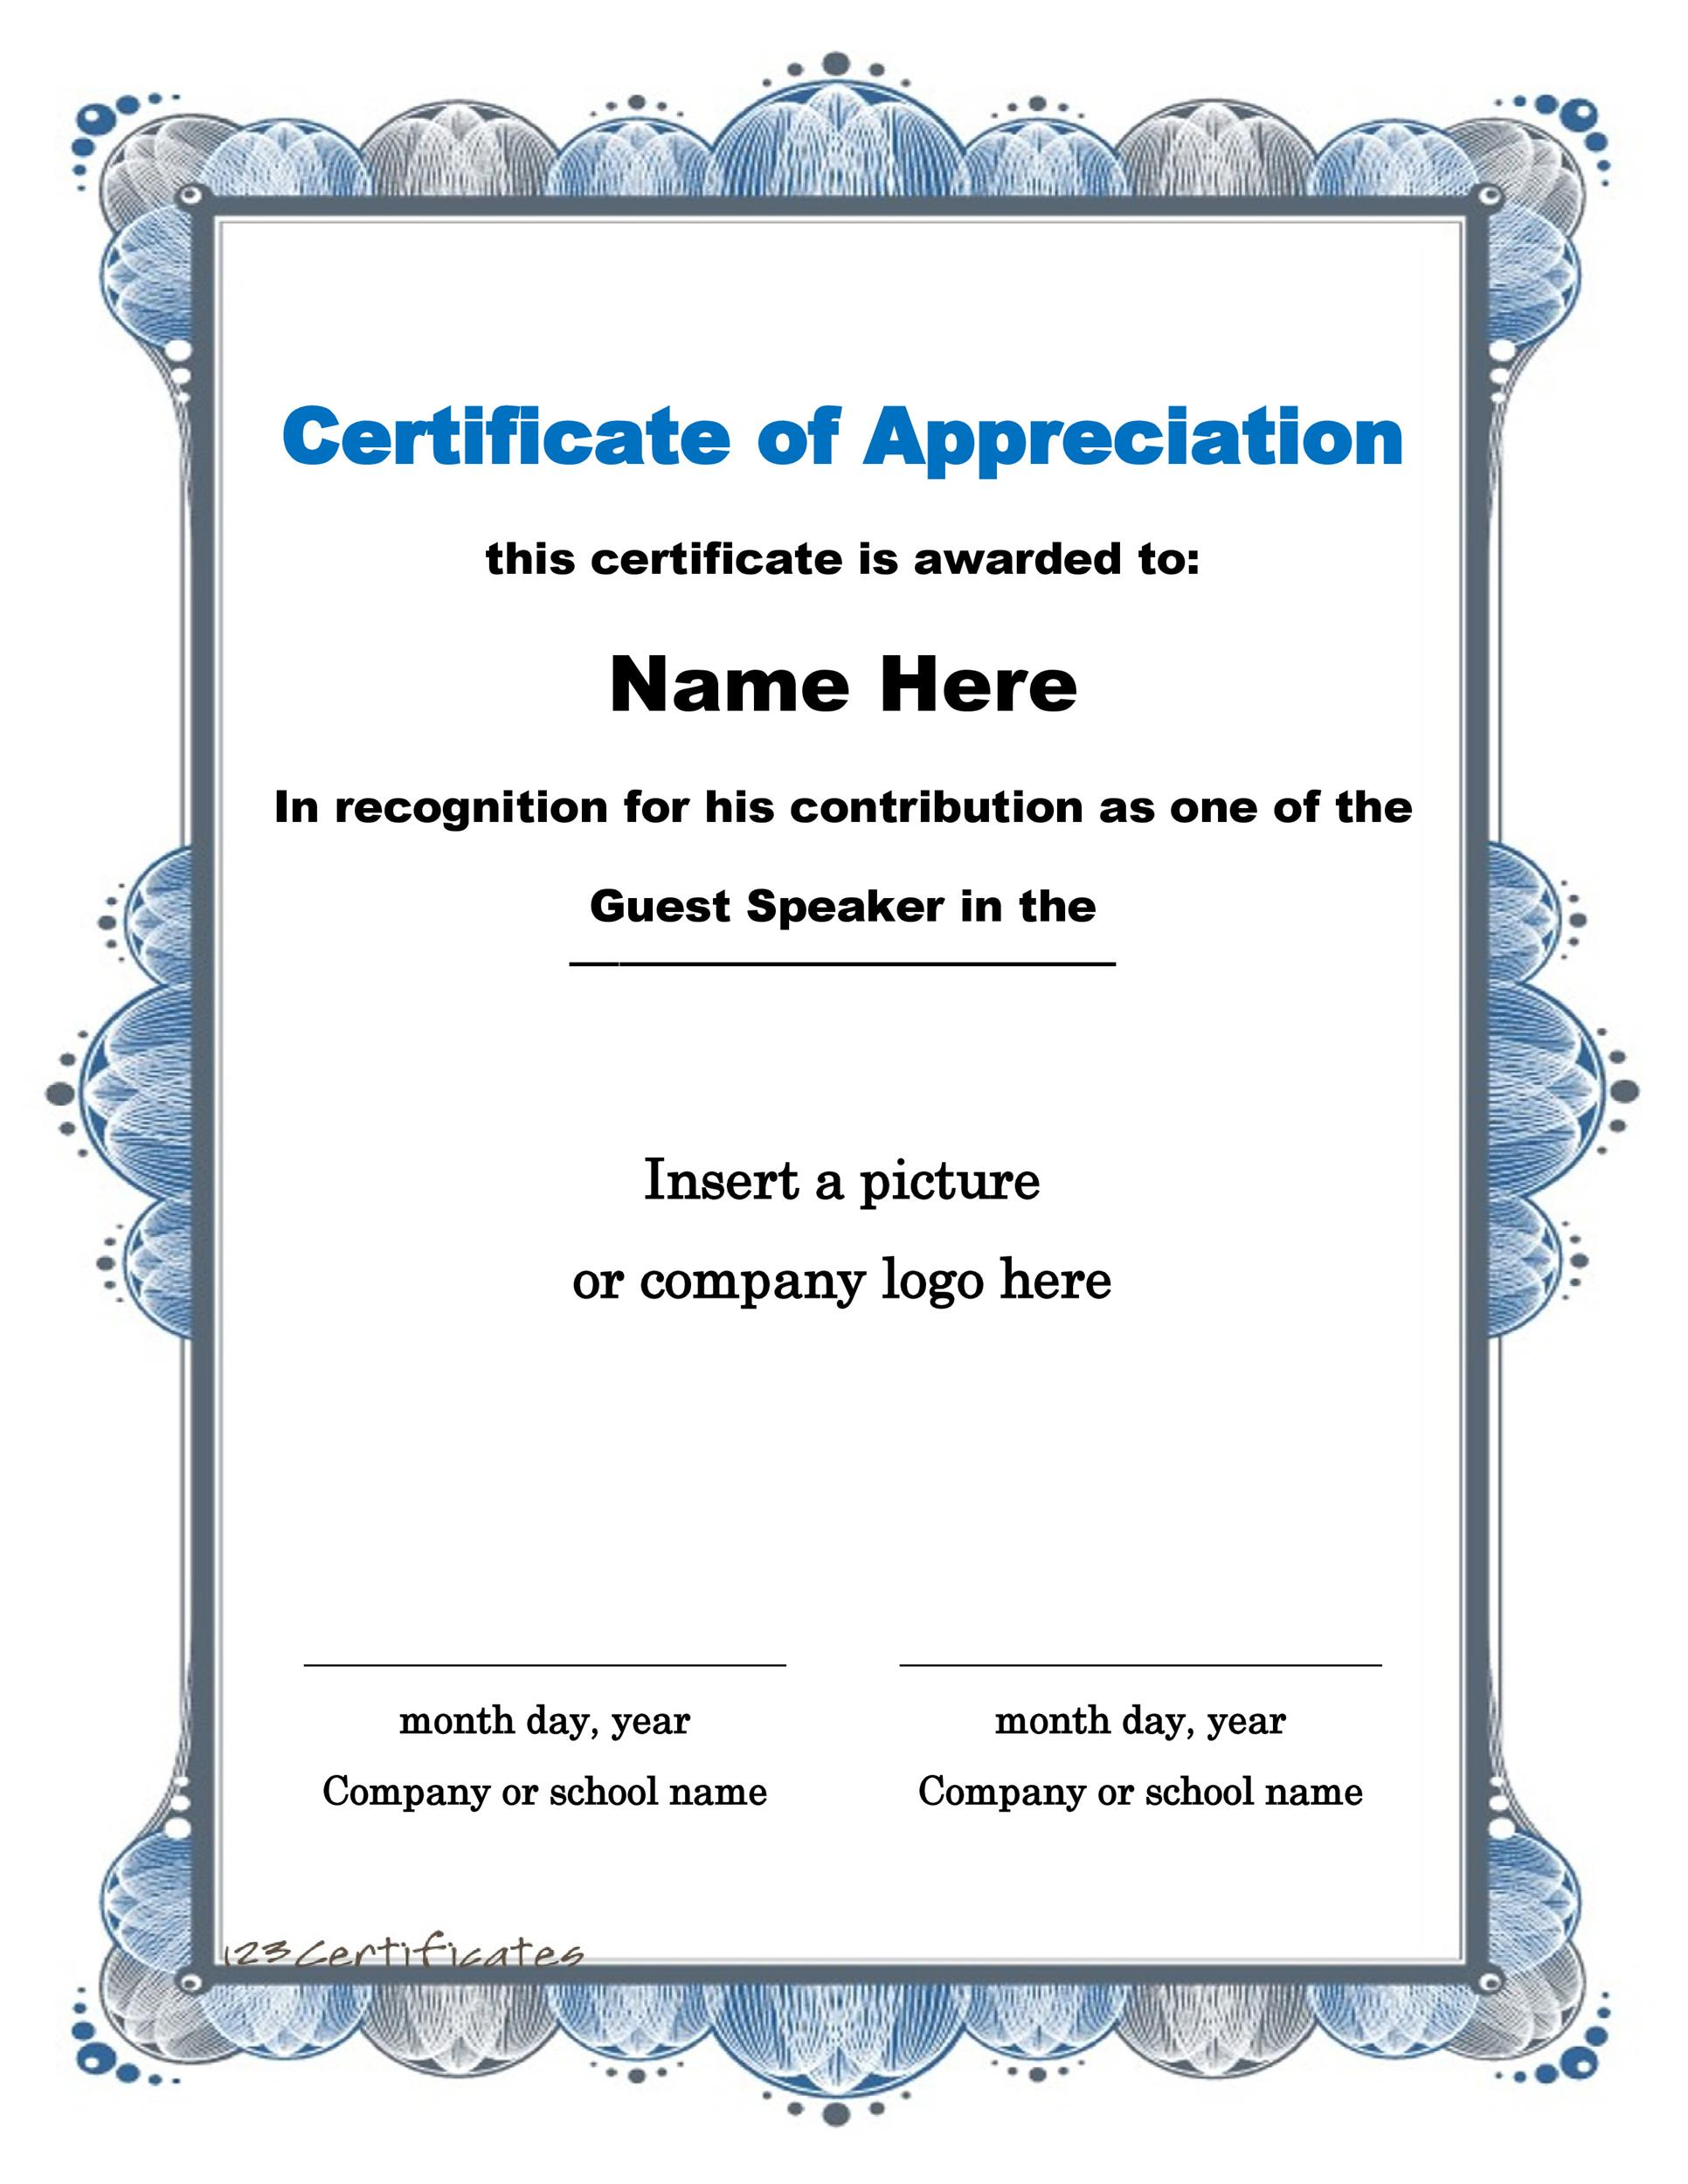 Printable Certificate Of Appreciation 02  Free Certificate Templates Word